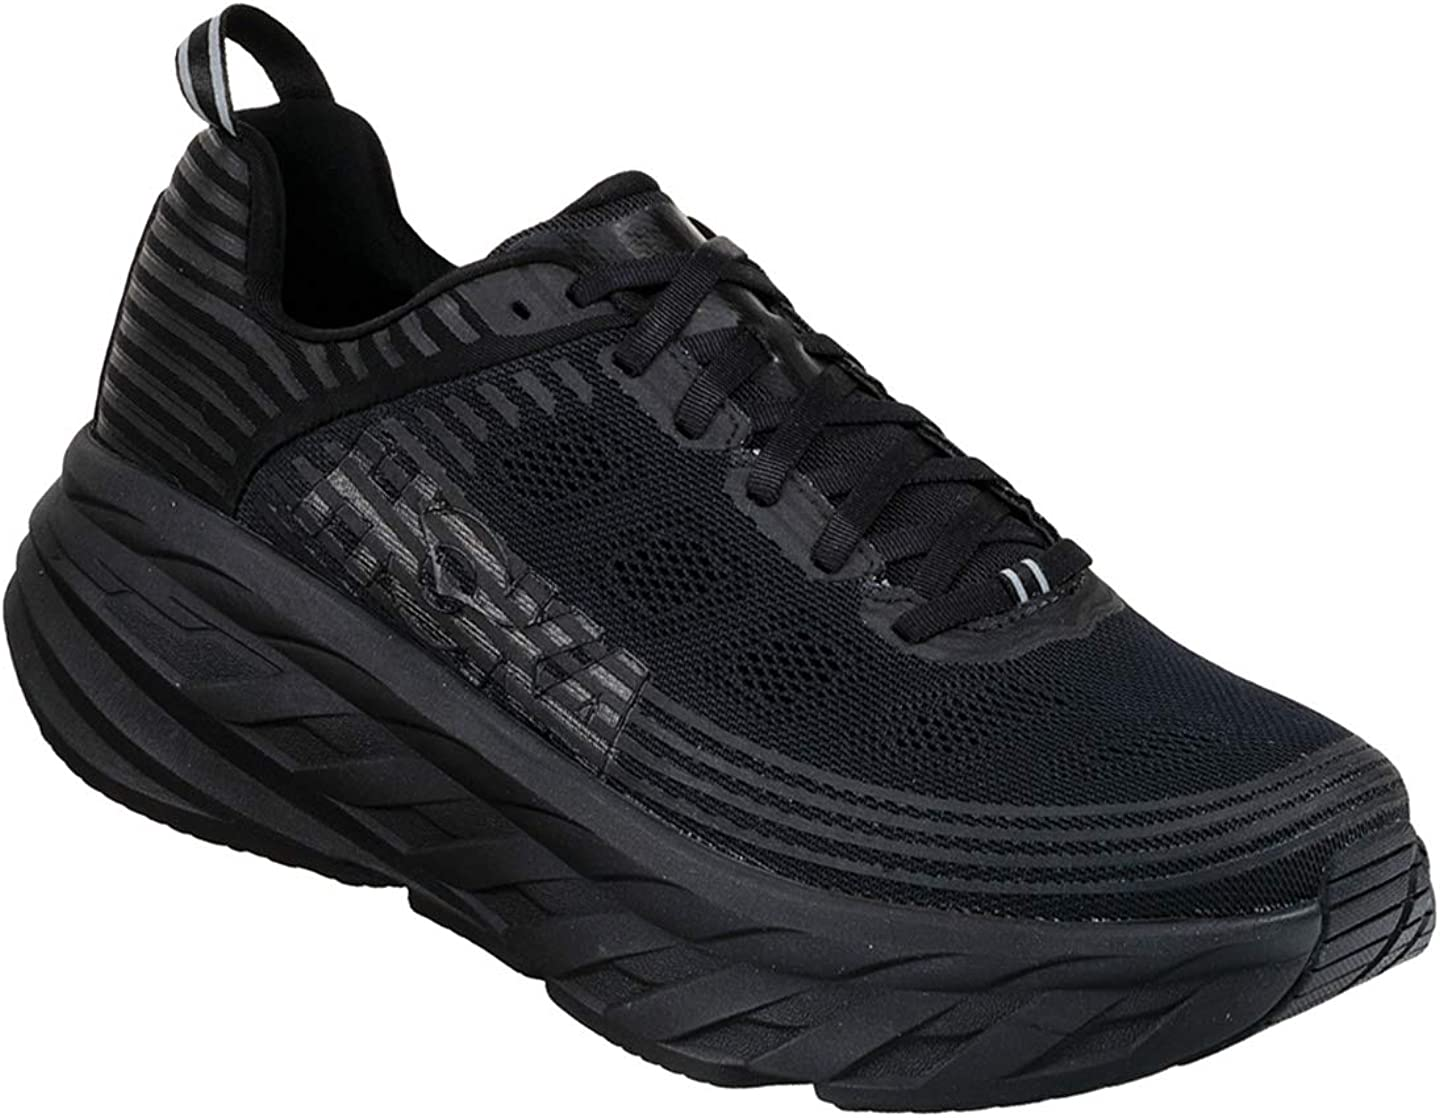 HOKA ONE ONE Mens Bondi 6 Running Shoe 10.5 EE US, Black Black